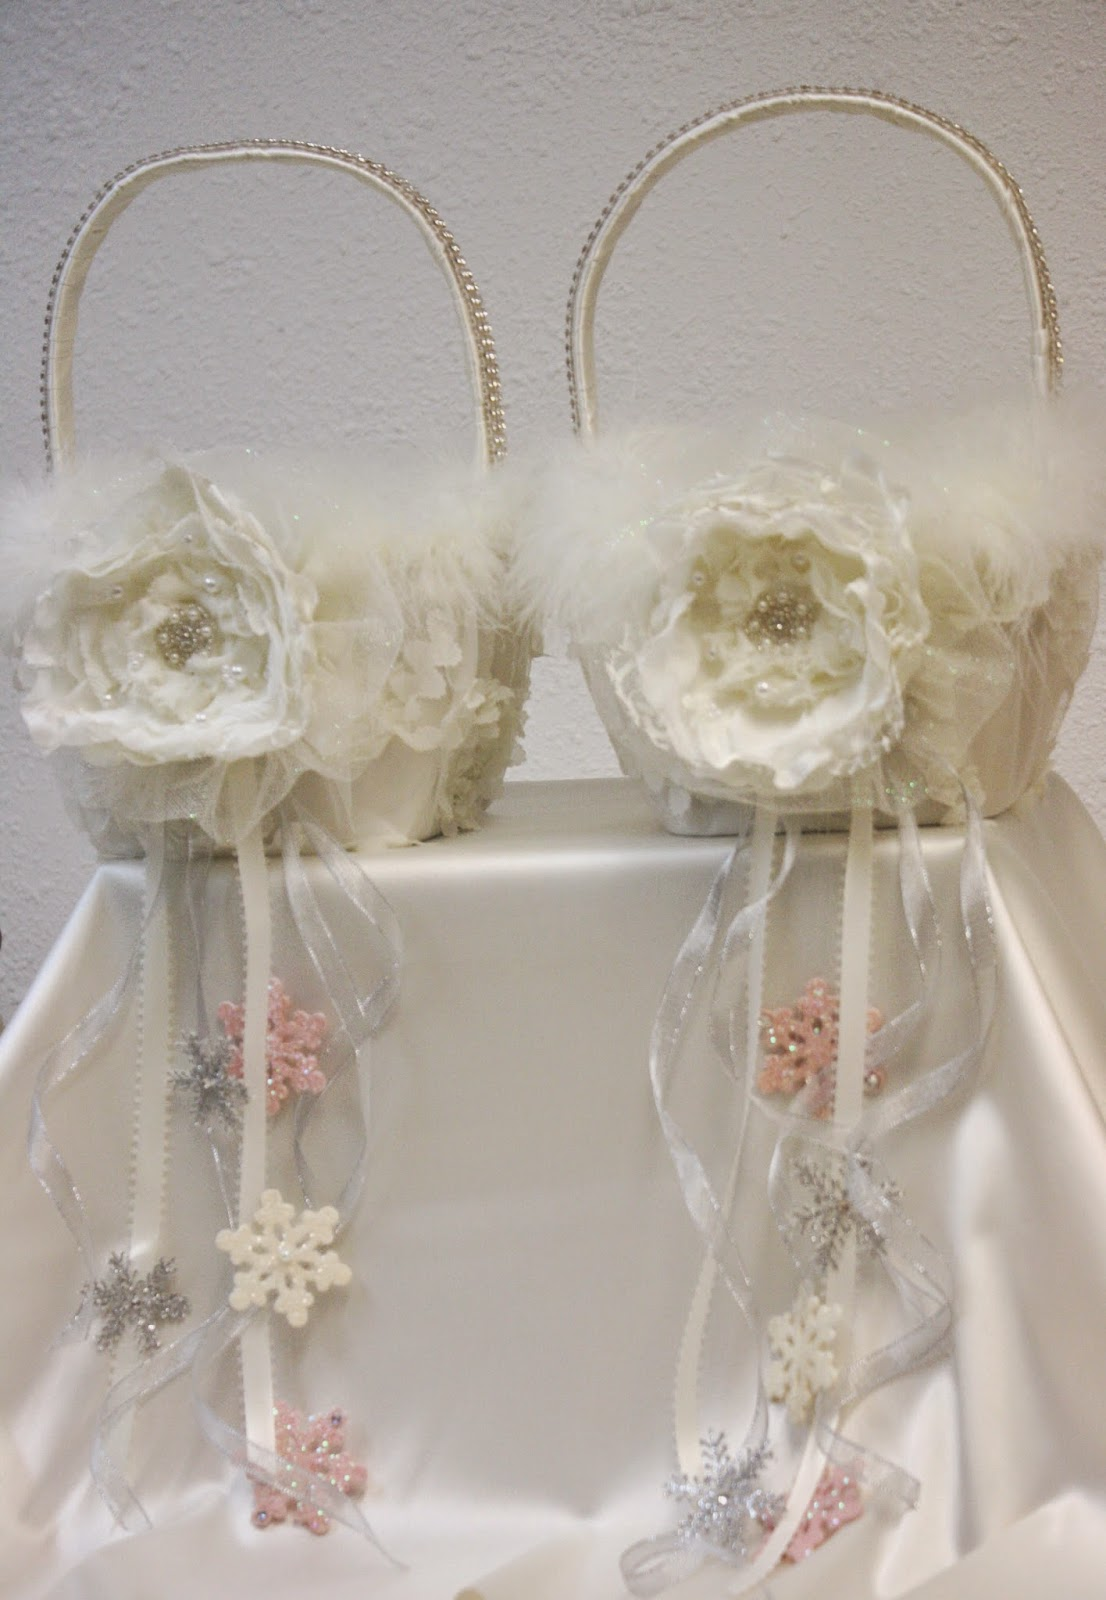 How To Make Flowers Girl Basket : His hers and ours diy winter wedding flower girl basket